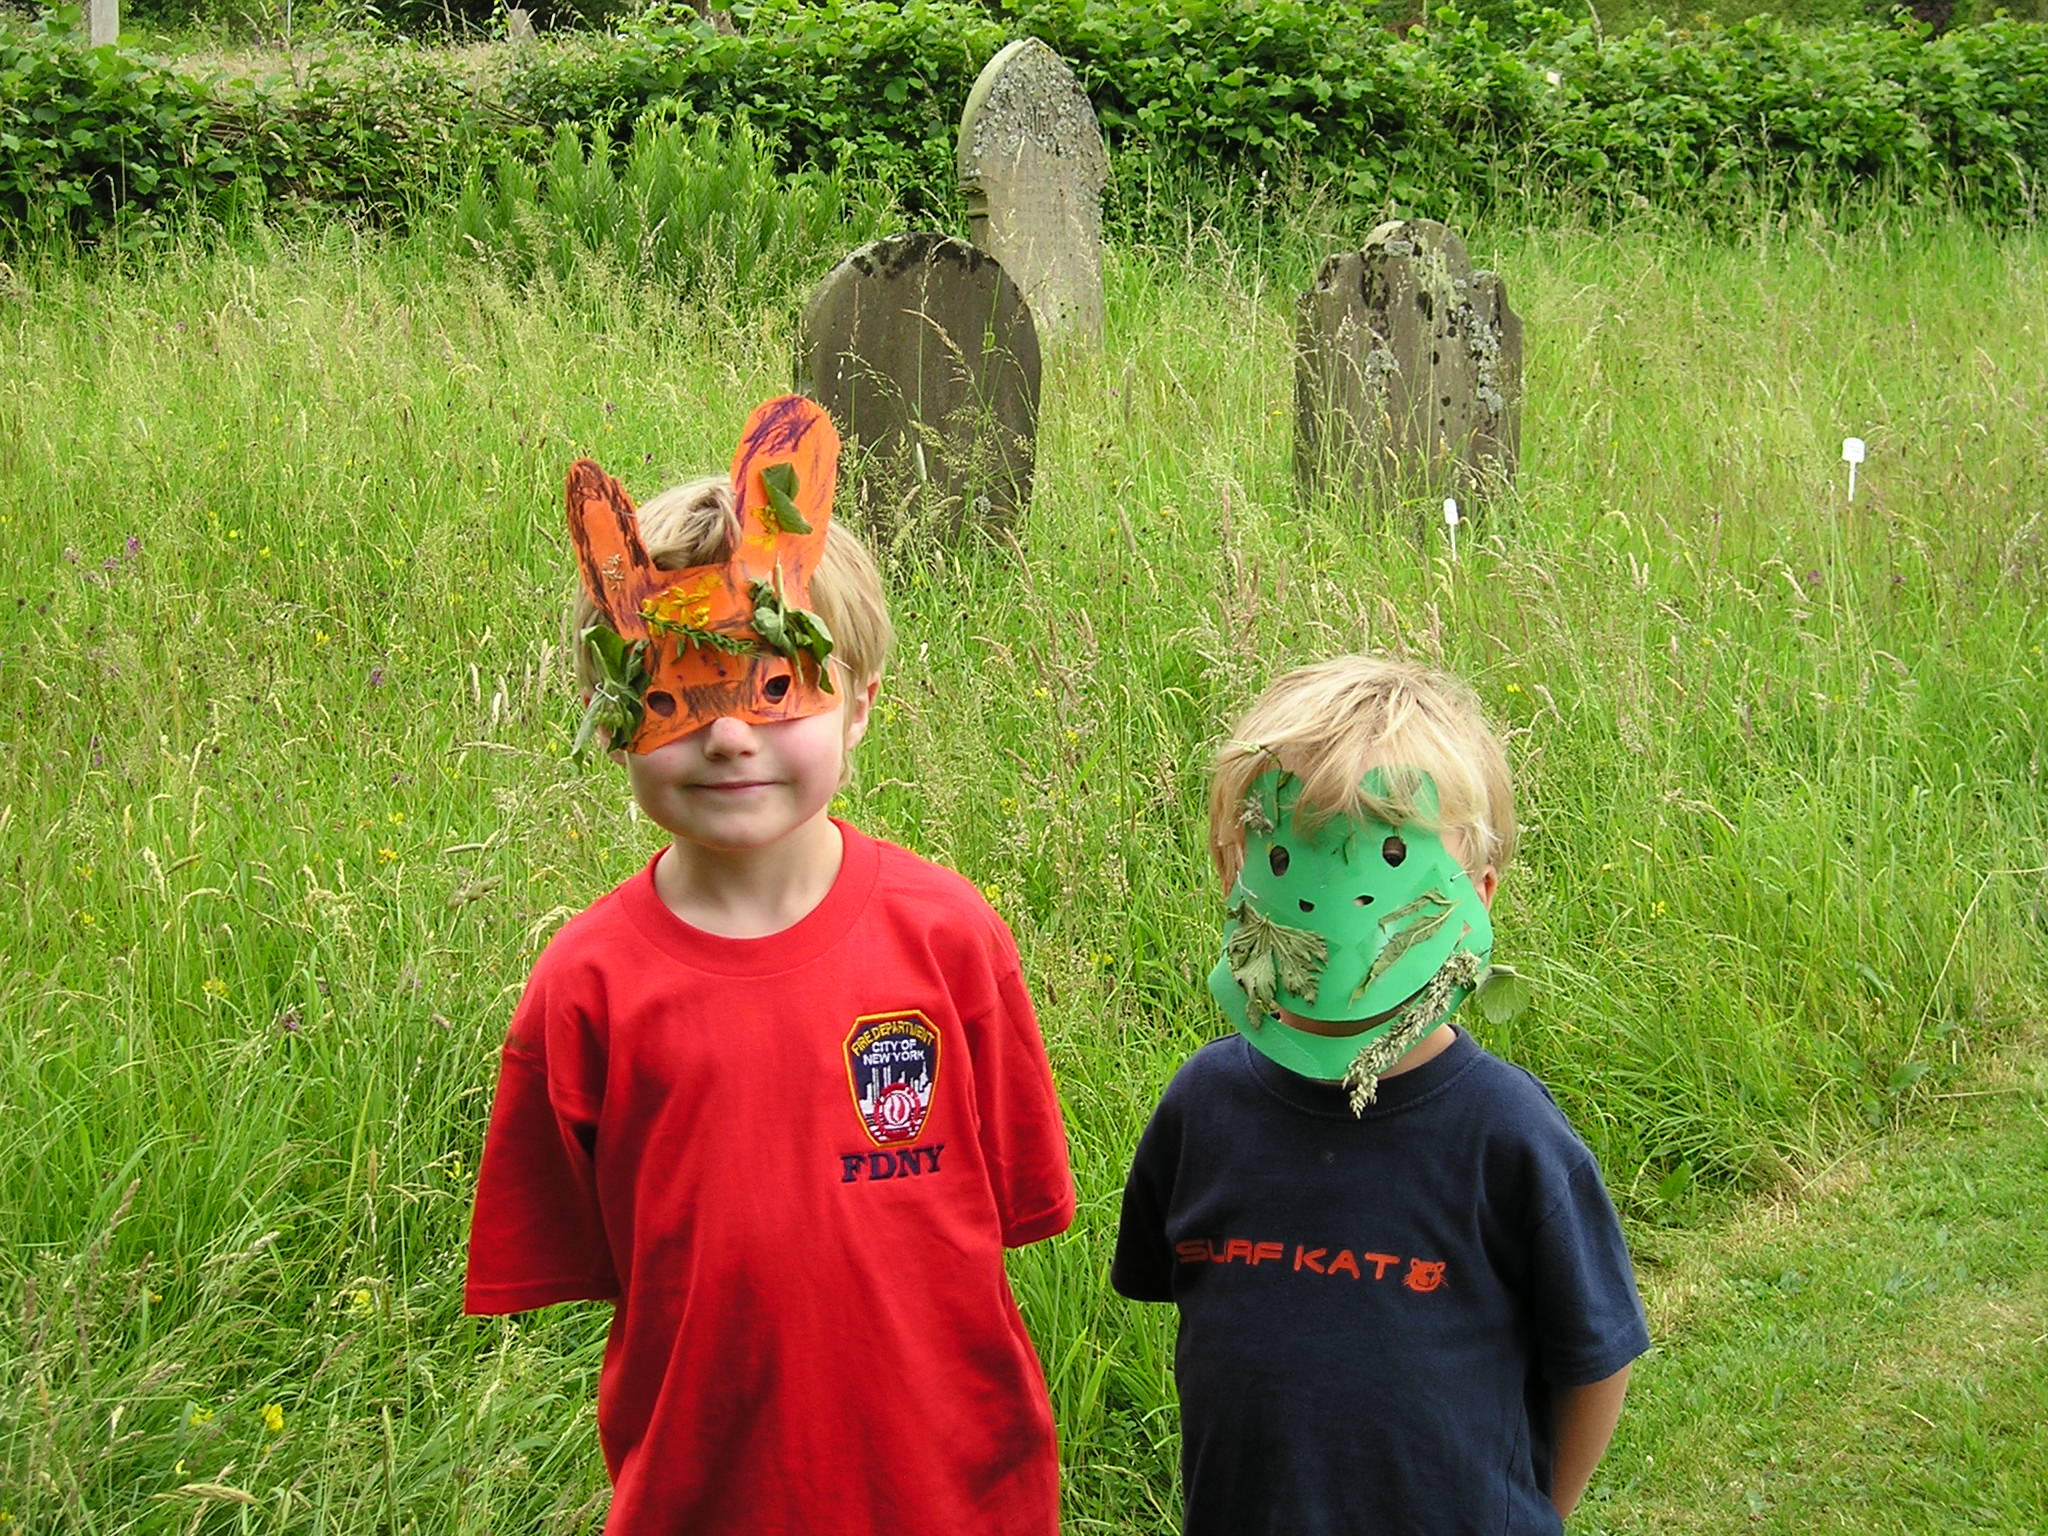 Cherishing Churchyards Week coincides with the Queen's 90th birthday – Let's celebrate!